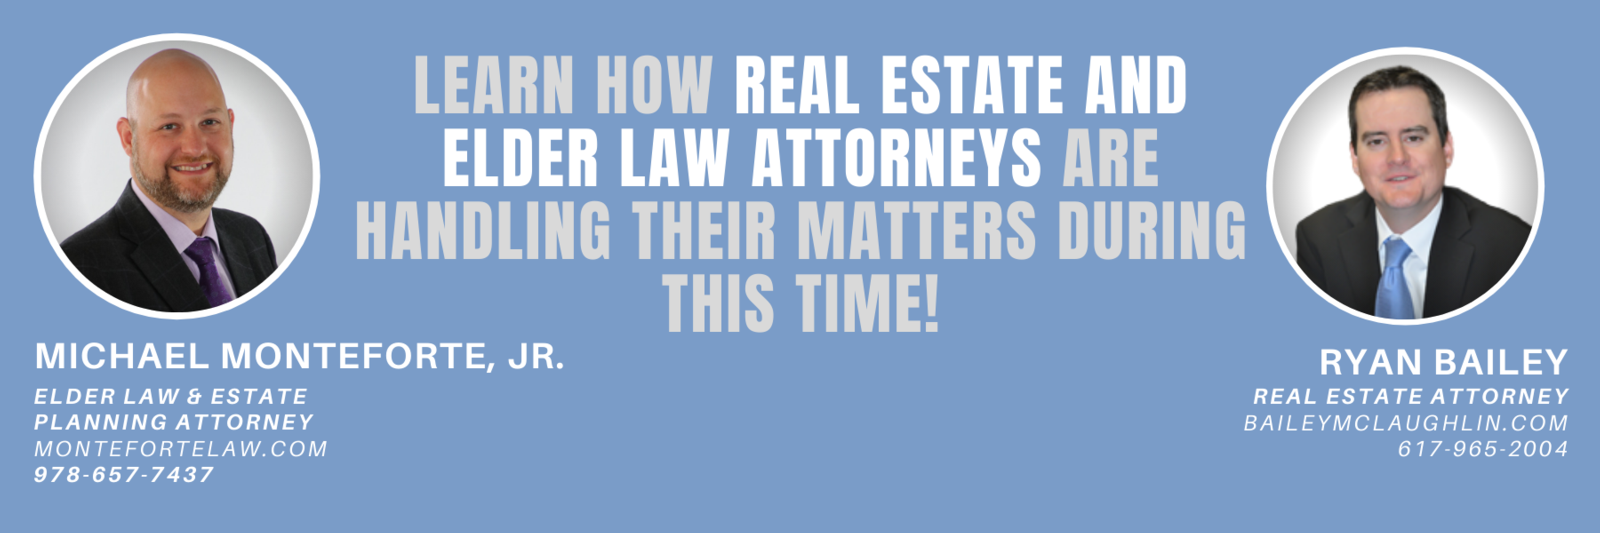 elder law and real estate